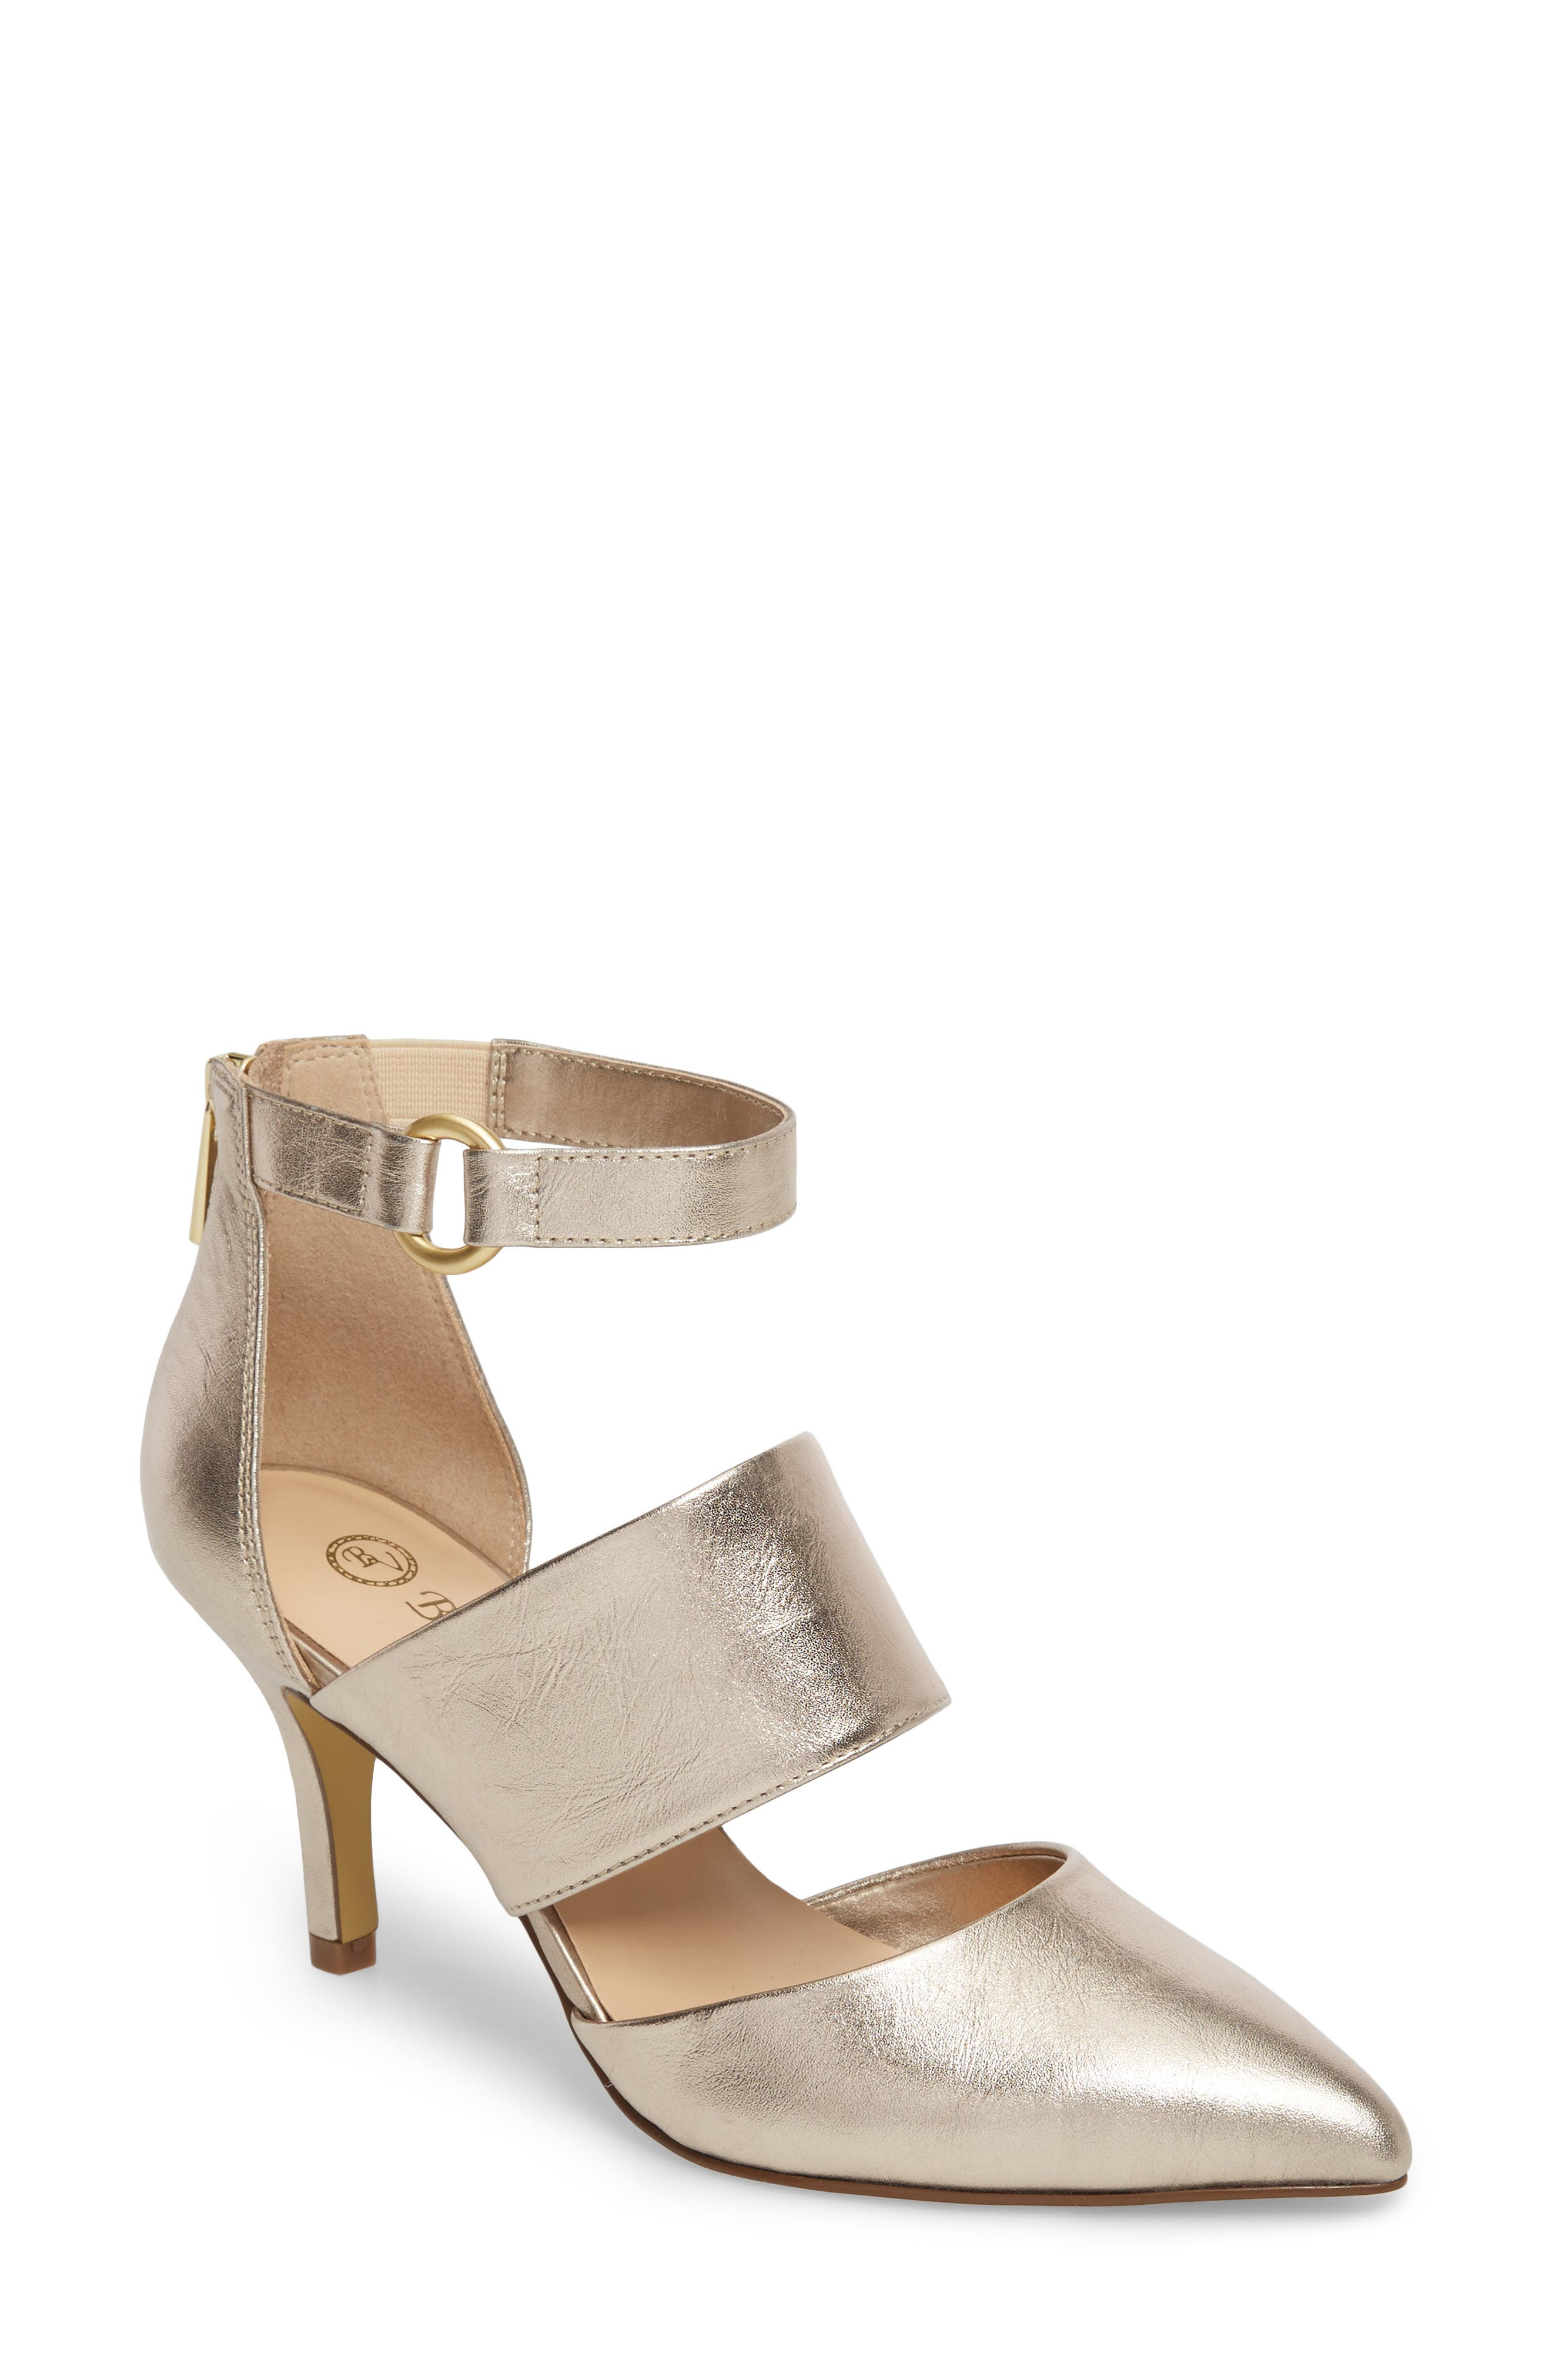 Diana Pump,                             Main thumbnail 1, color,                             Champagne Leather